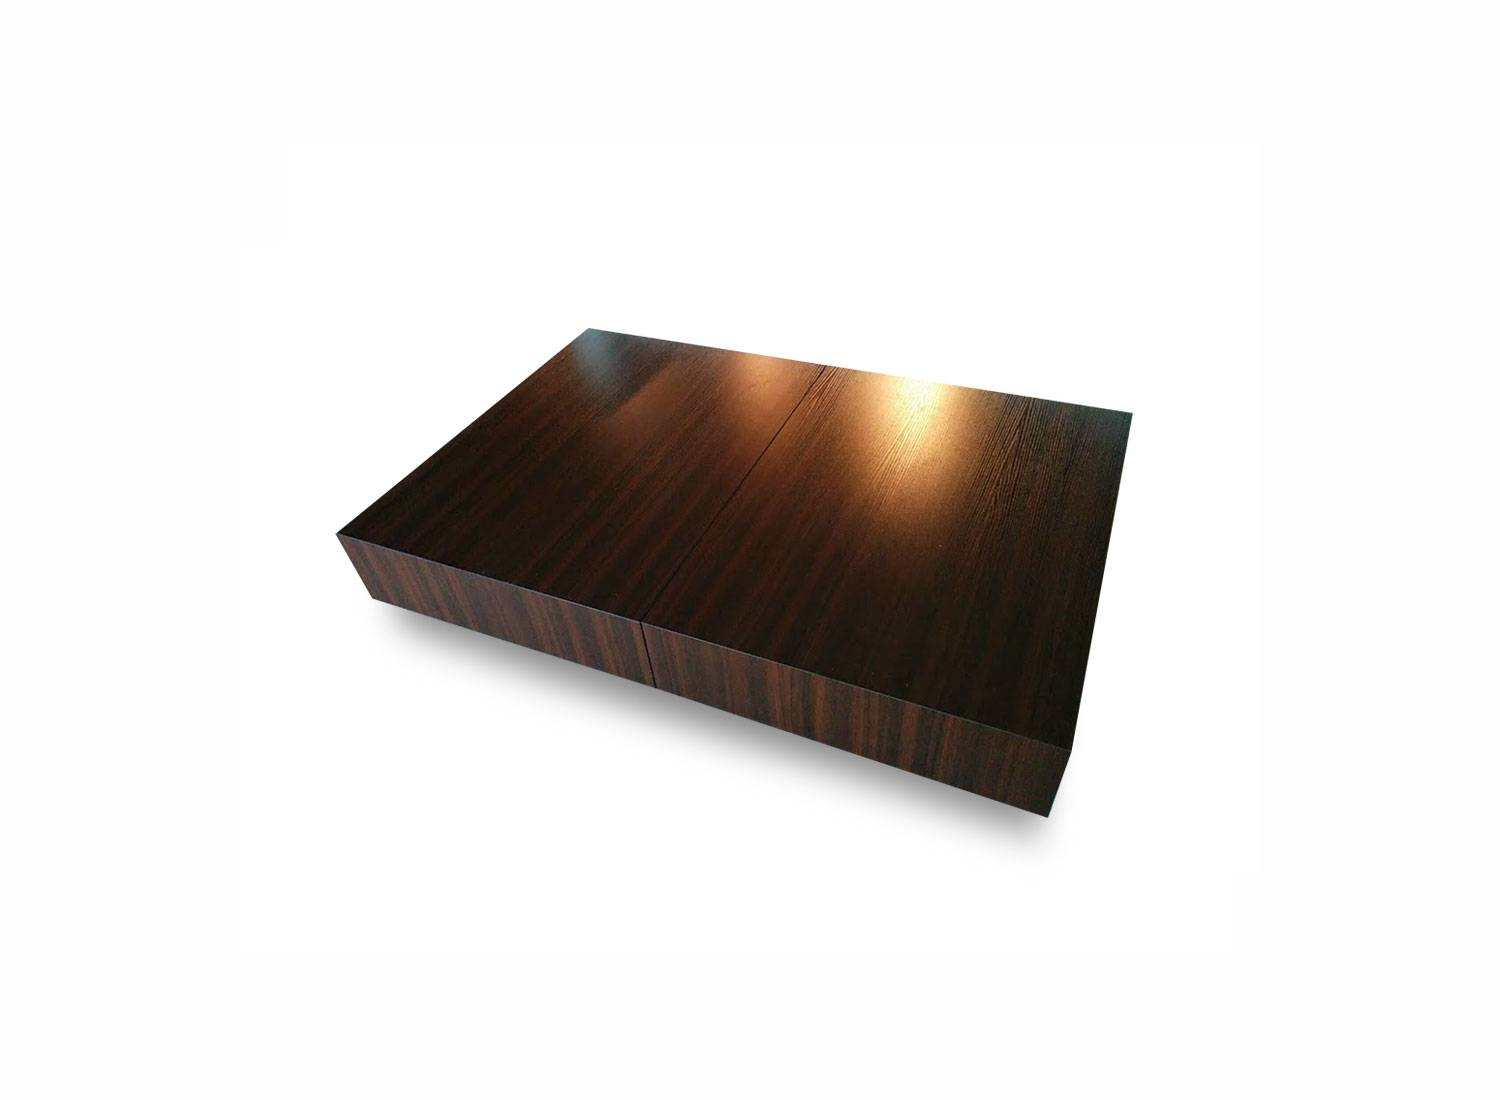 Transforming Box Coffee To Dining Table | Expand Furniture intended for Coffee Table To Dining Table (Image 28 of 30)